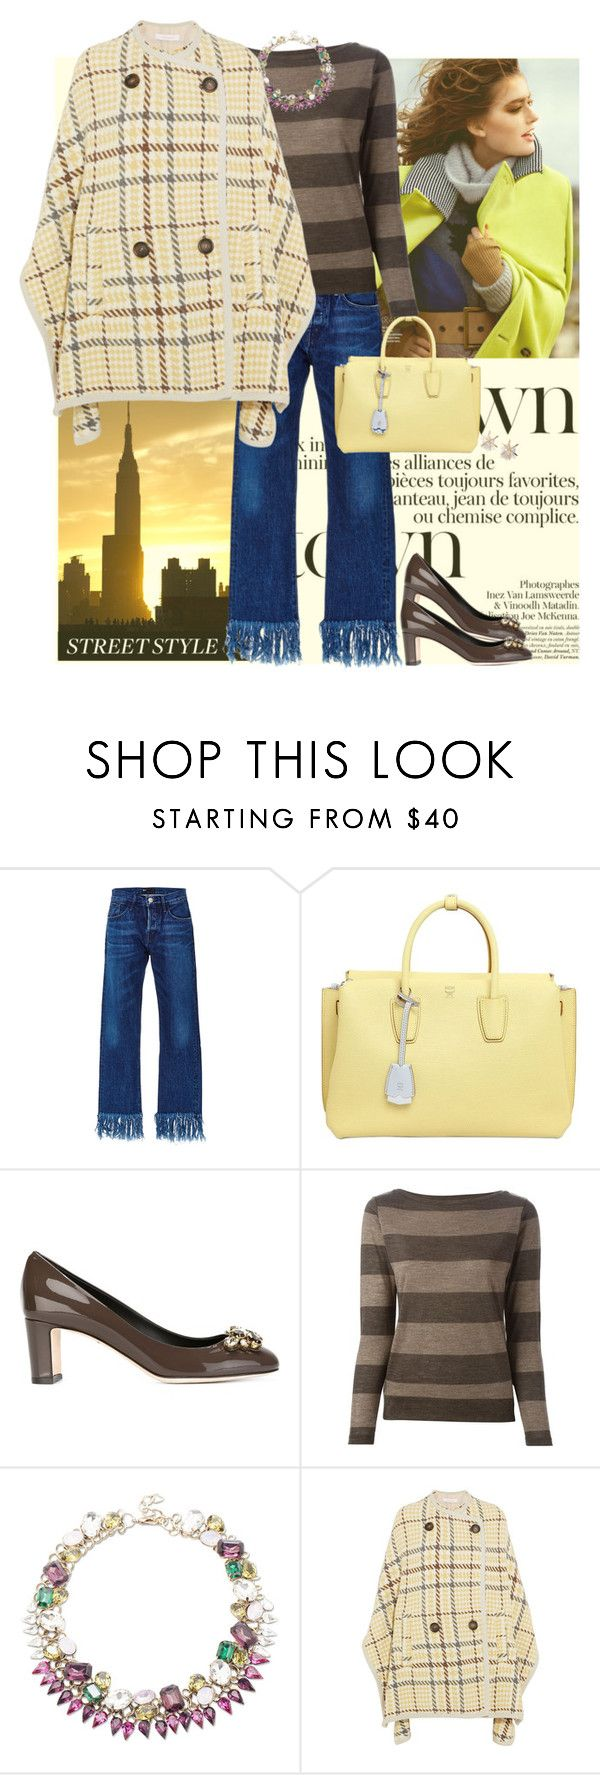 """Street Style"" by musicfriend1 ❤ liked on Polyvore featuring Olsson, 3x1, MCM, Dolce&Gabbana, Eleventy, Sole Society, See by Chloé, women's clothing, women and female"